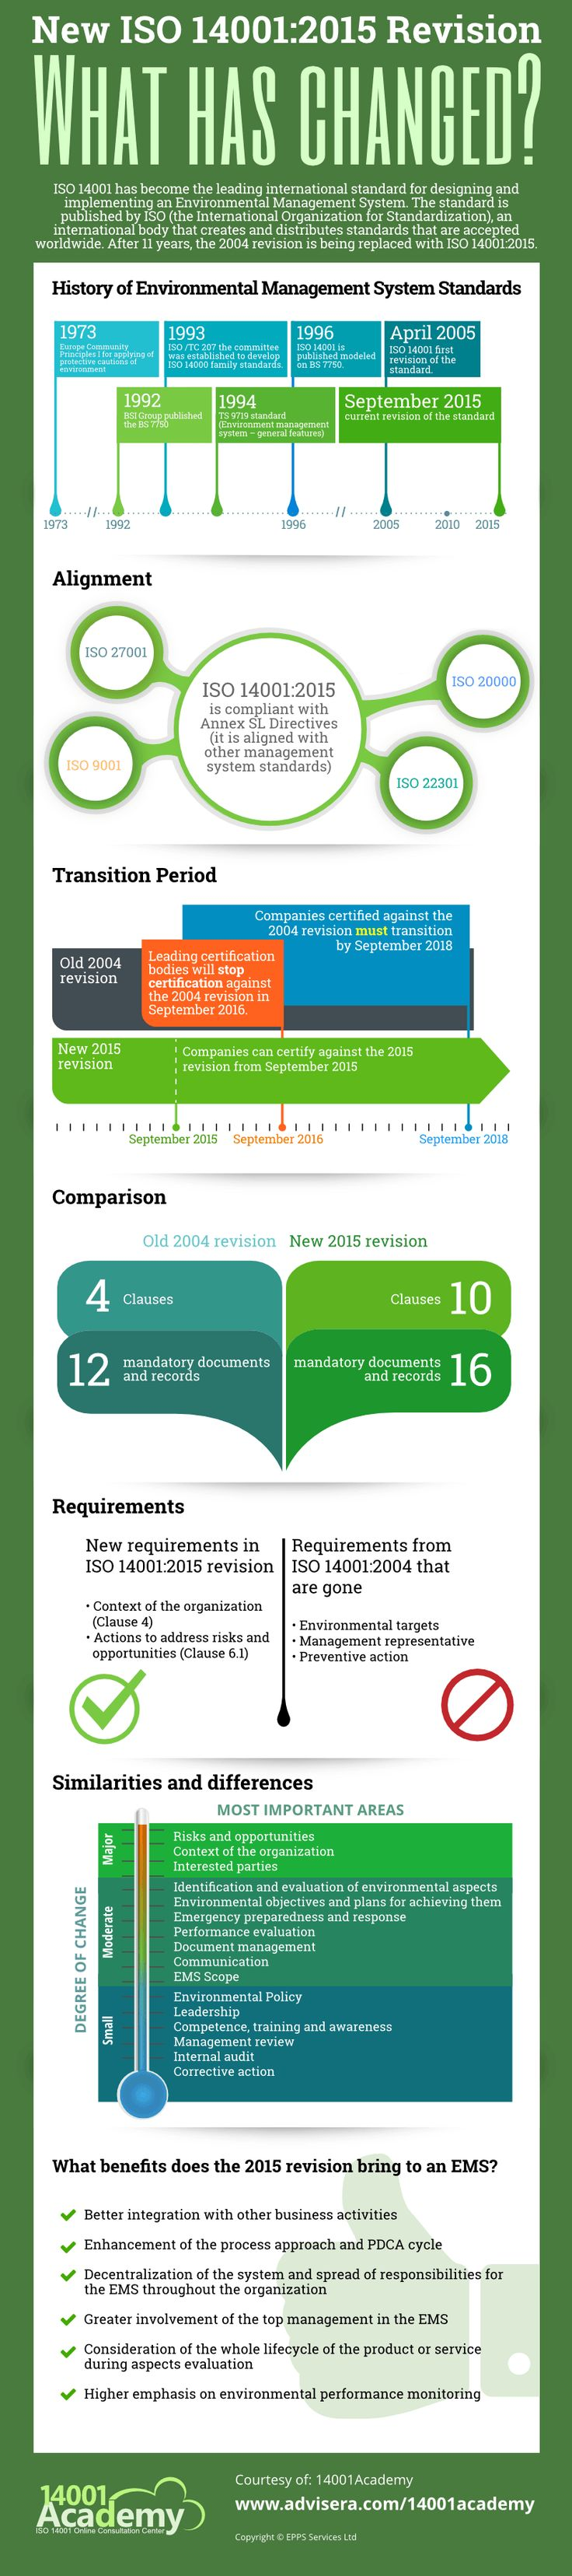 ISO 14001:2015 vs. 2004 Revision – What has Changed? #infographic #Business #ISO